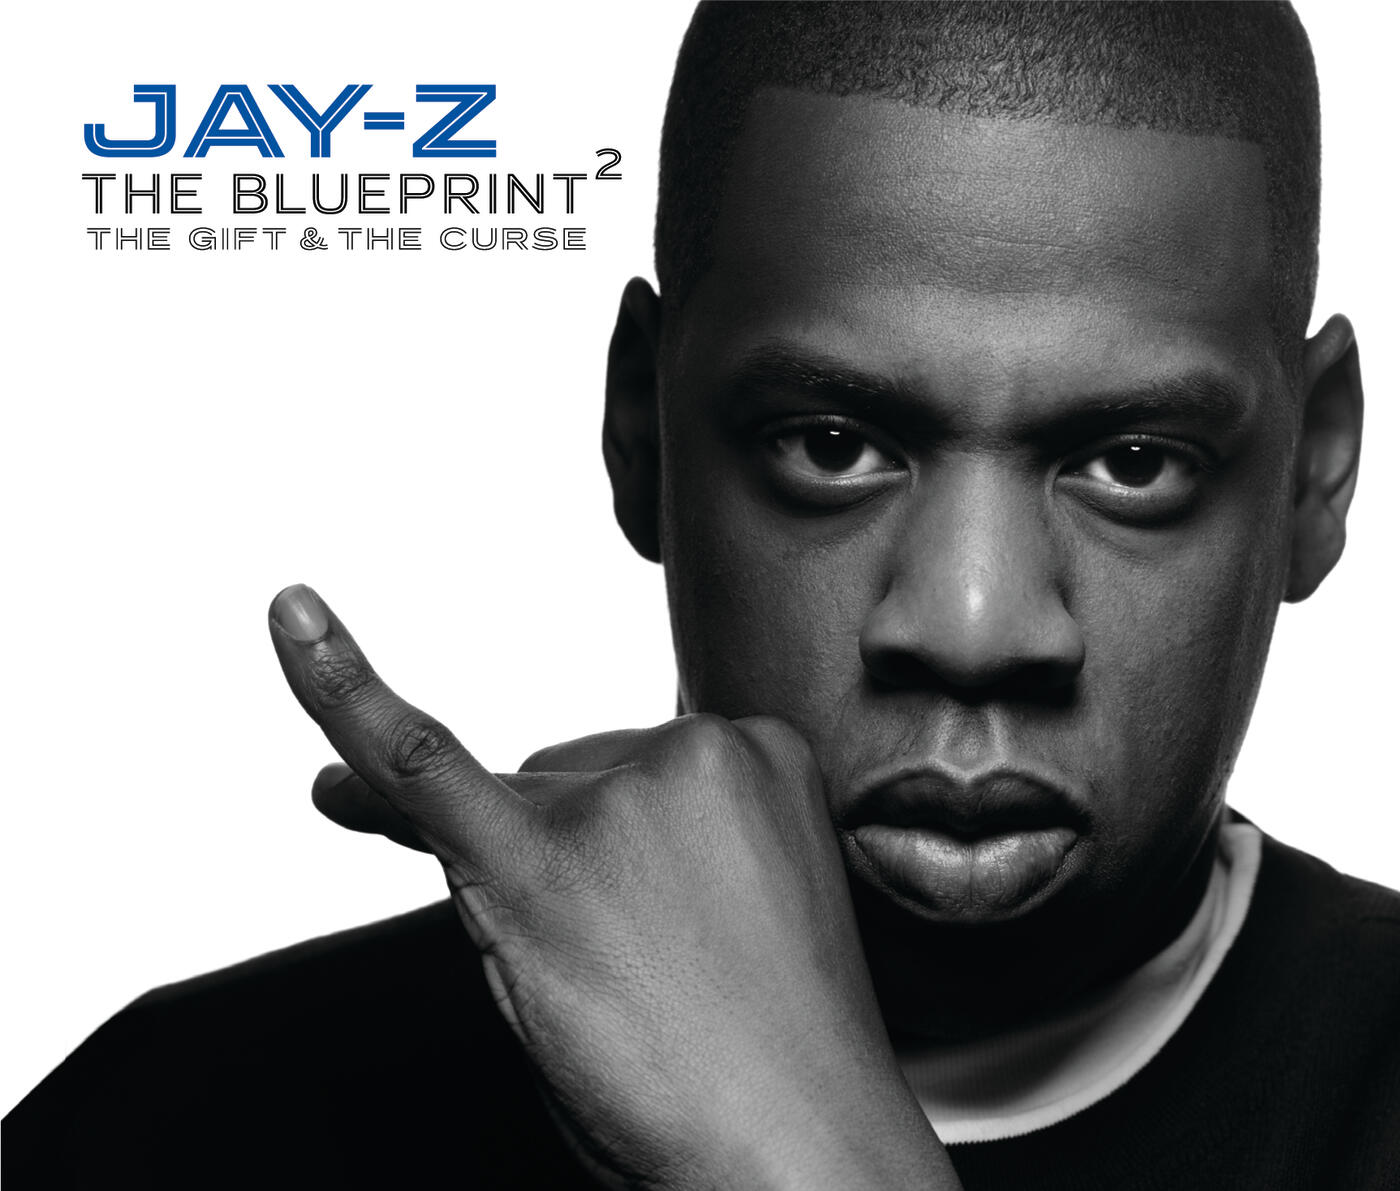 Listen free to jay z the blueprint 2 the gift the curse radio listen free to jay z the blueprint 2 the gift the curse radio on iheartradio iheartradio malvernweather Images